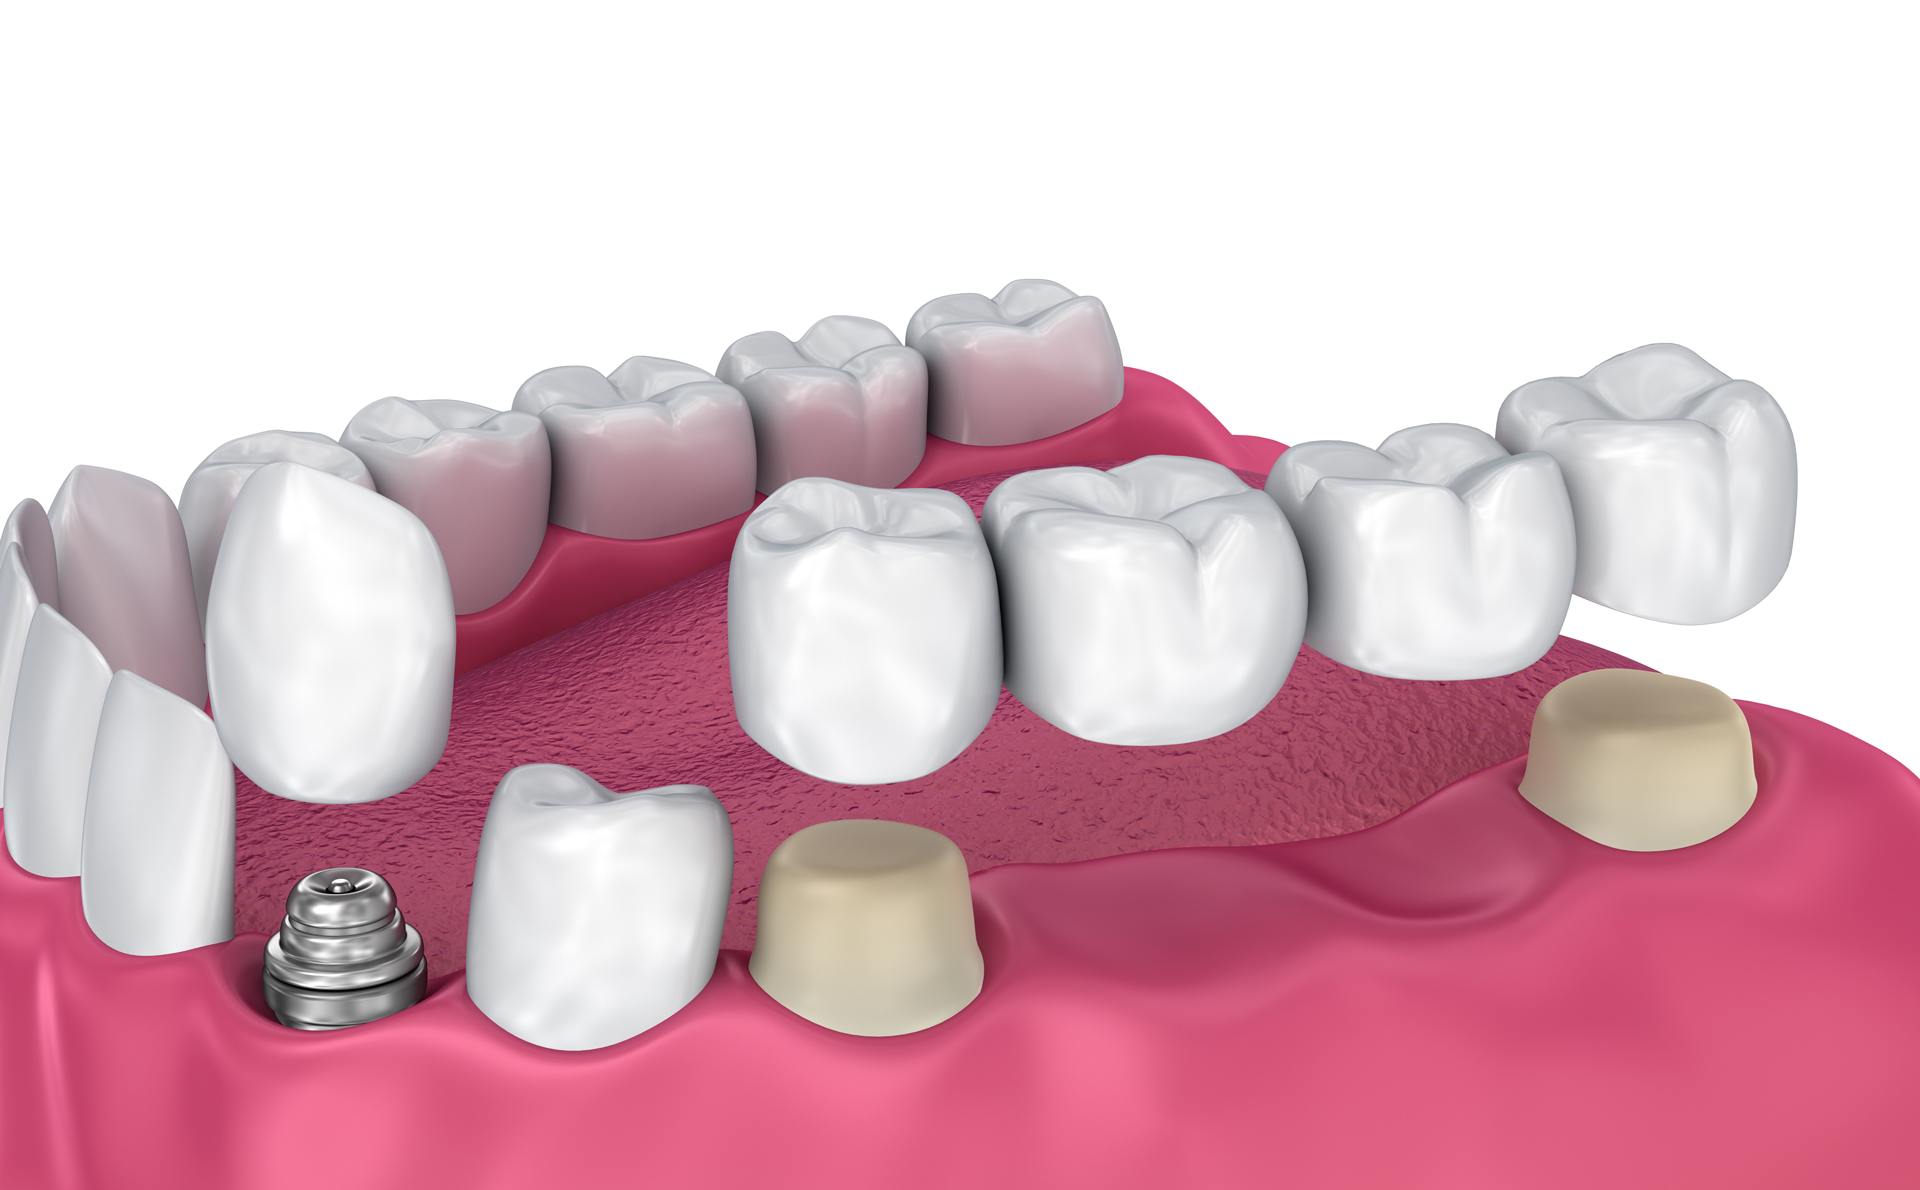 Dental Implants vs Dental Bridges